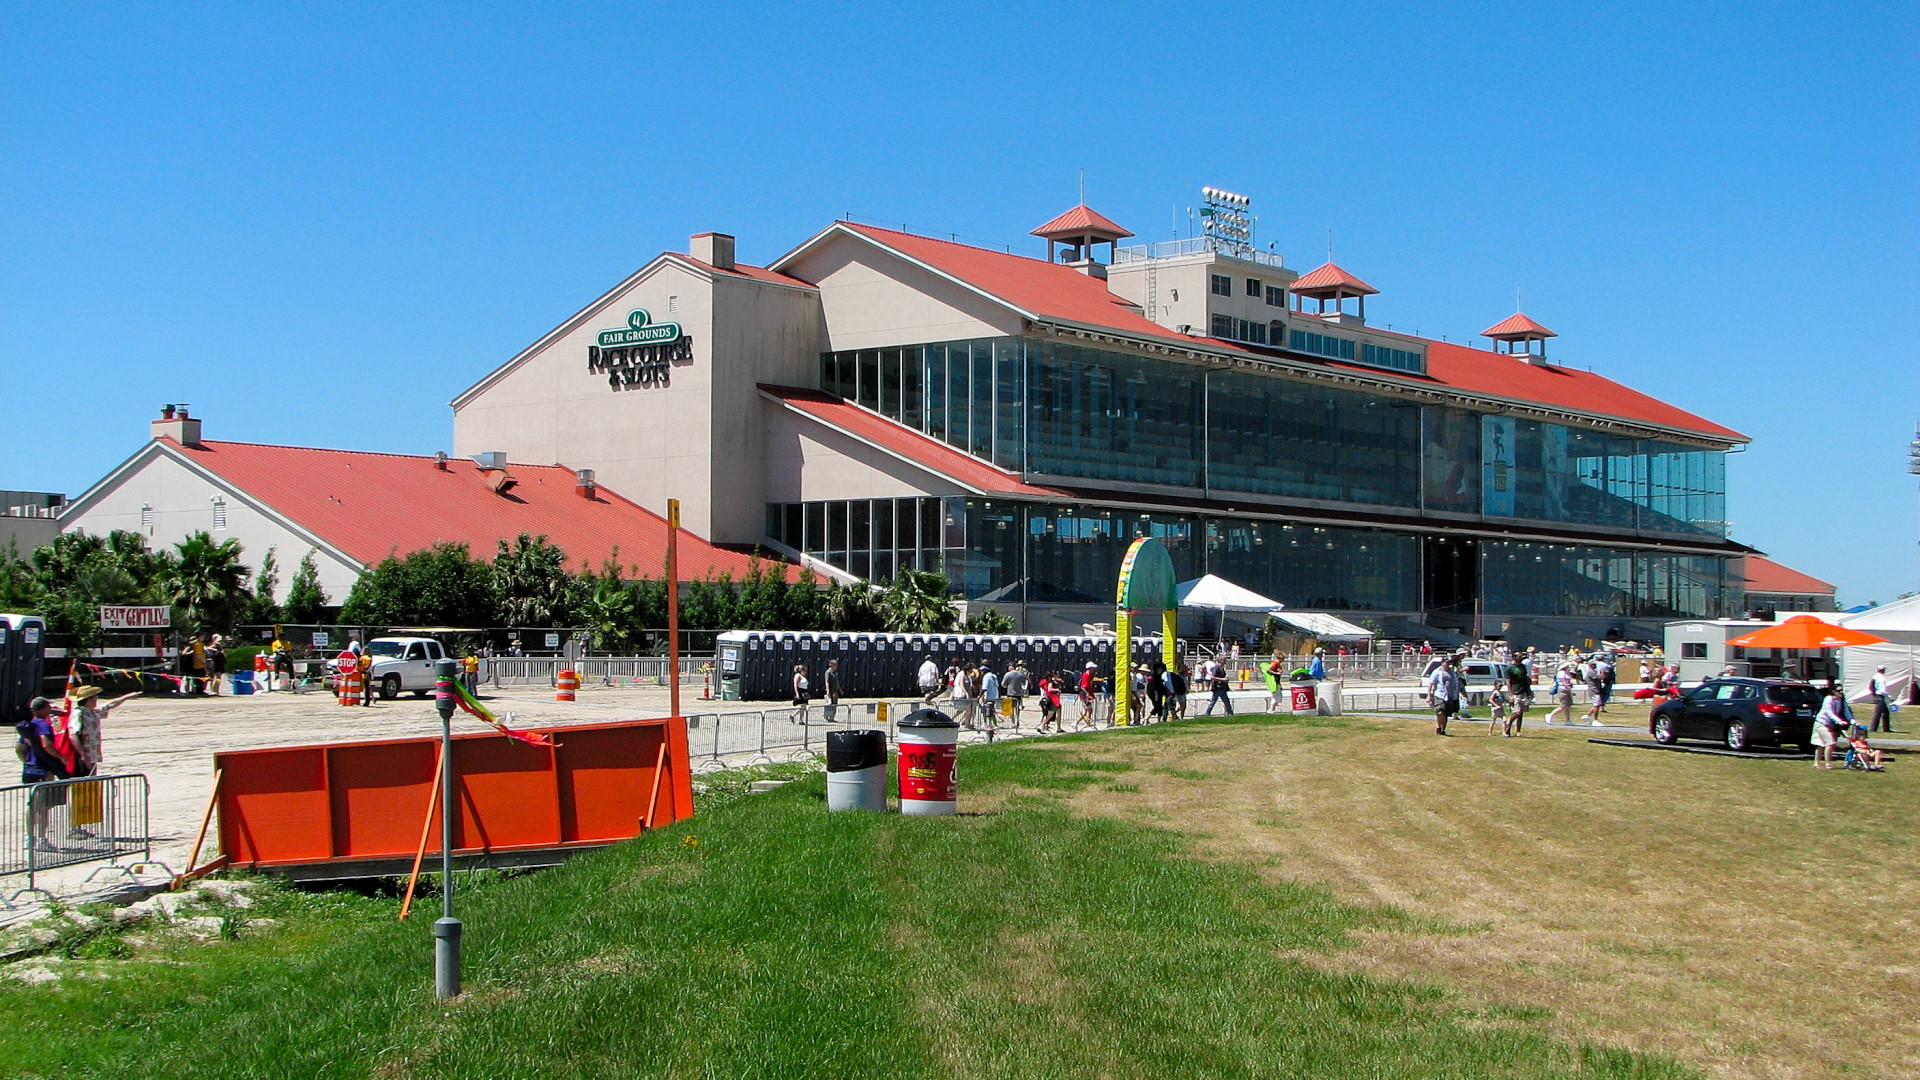 The Fairgrounds grandstand